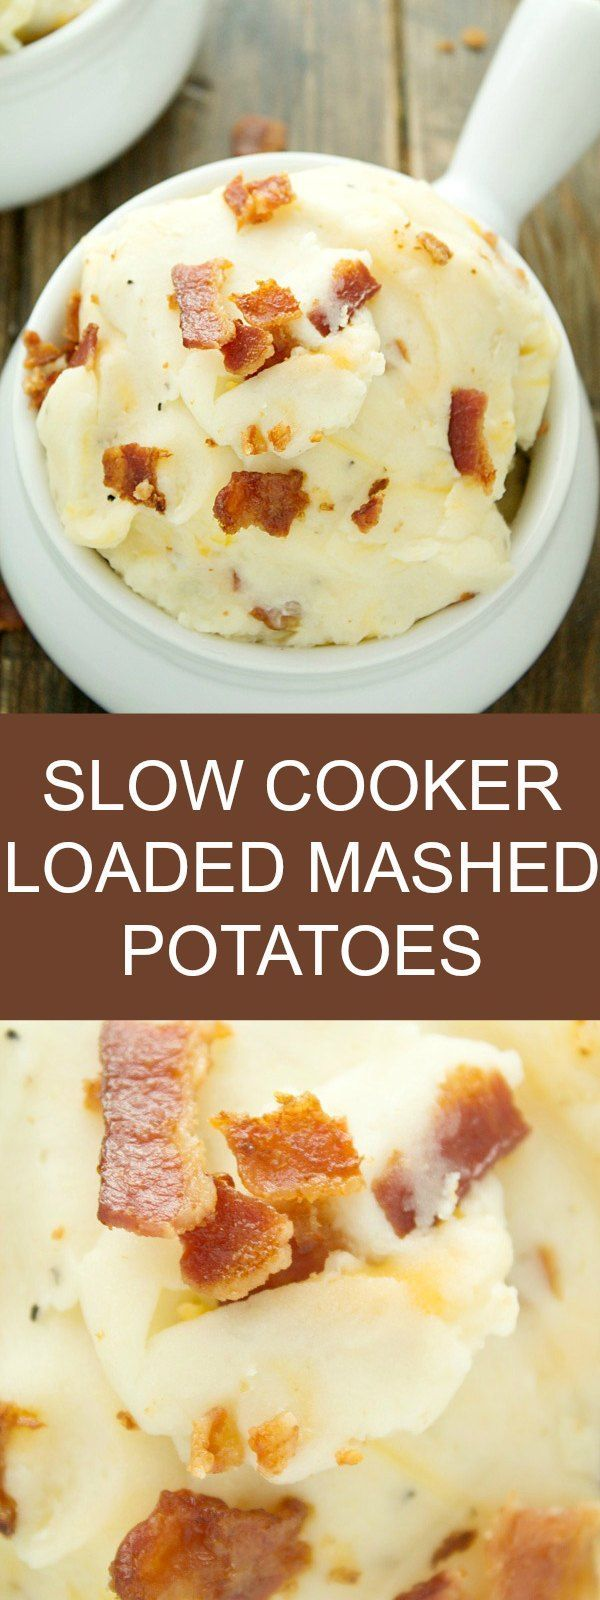 The EASIEST loaded mashed potato recipe ever! They are life-changing and packed with tons of flavor!